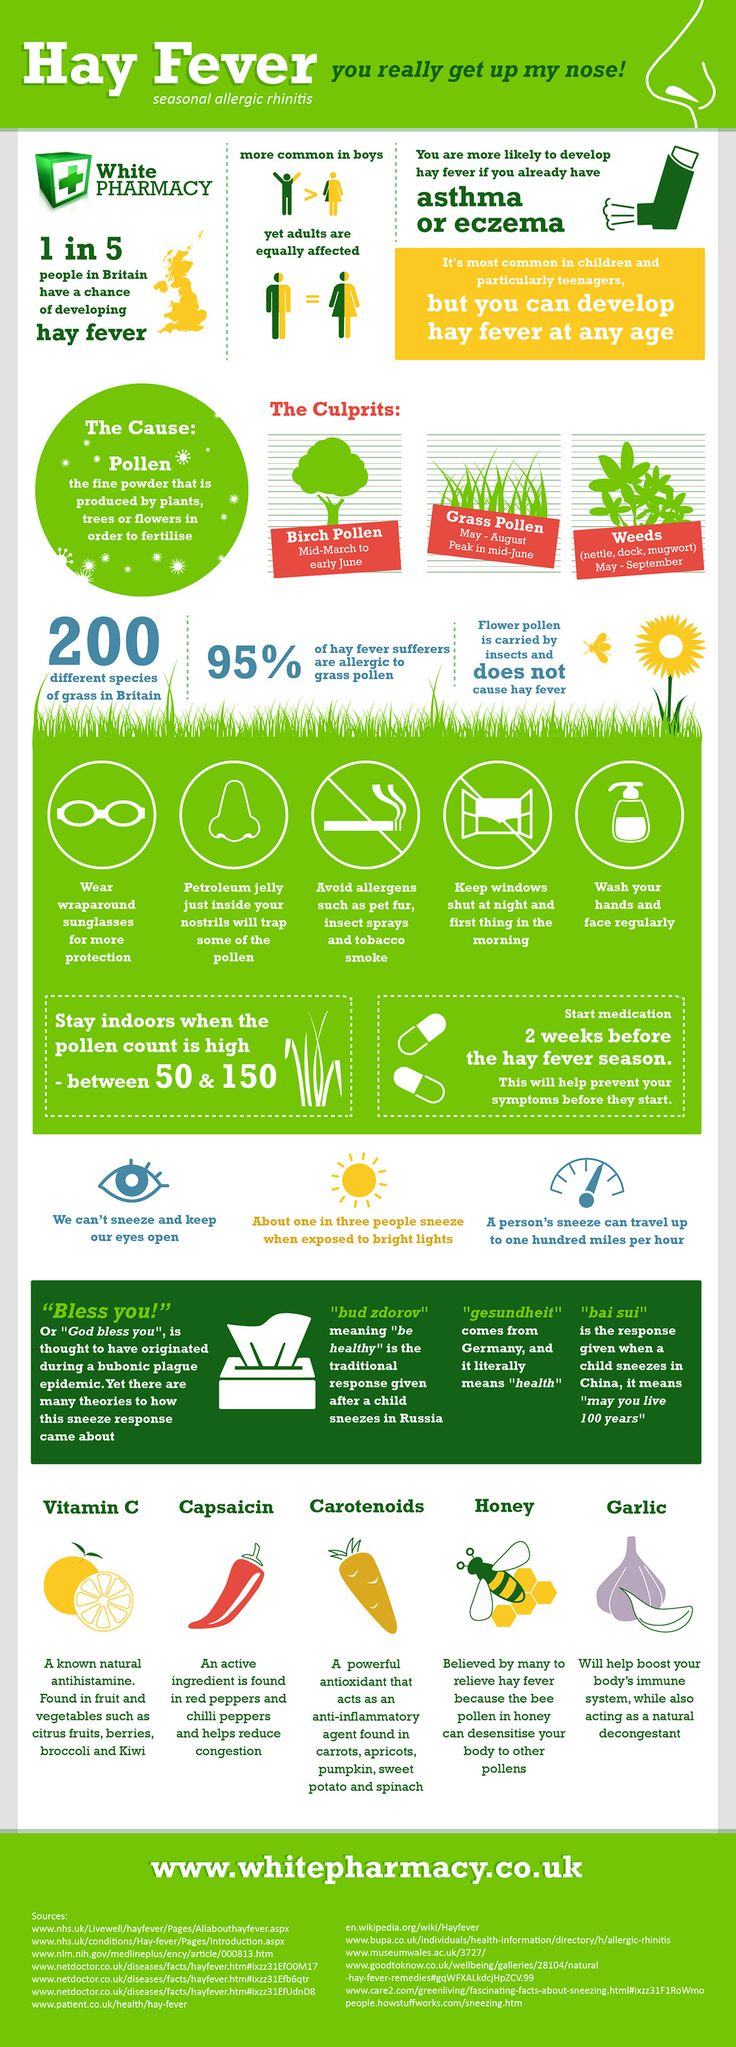 Hay Fever; You Really Get Up My Nose!   #infographic #Hayfever #Health